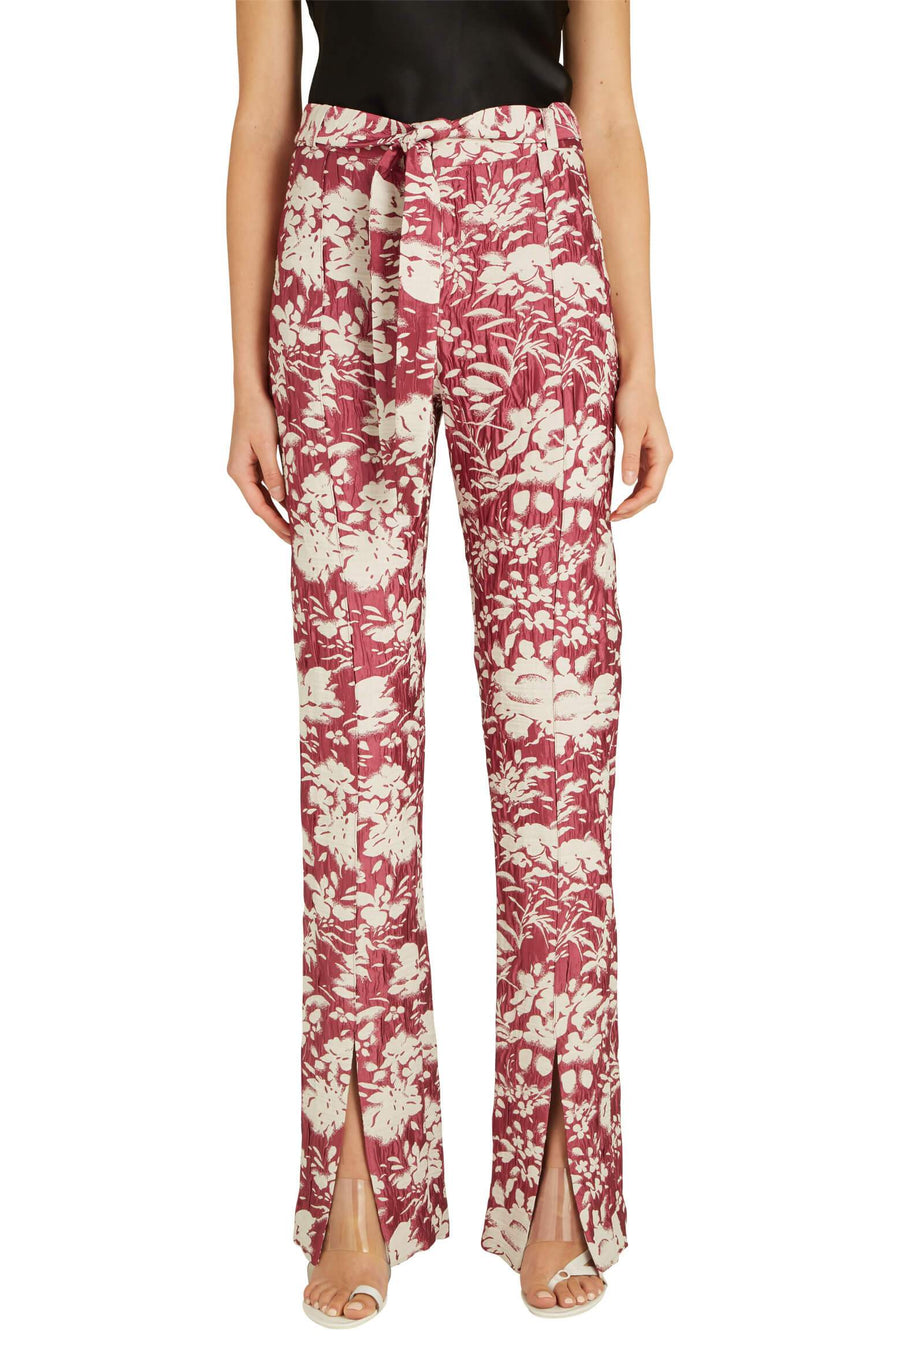 Alexis Burgos Pants in Fuchsia from The New Trend